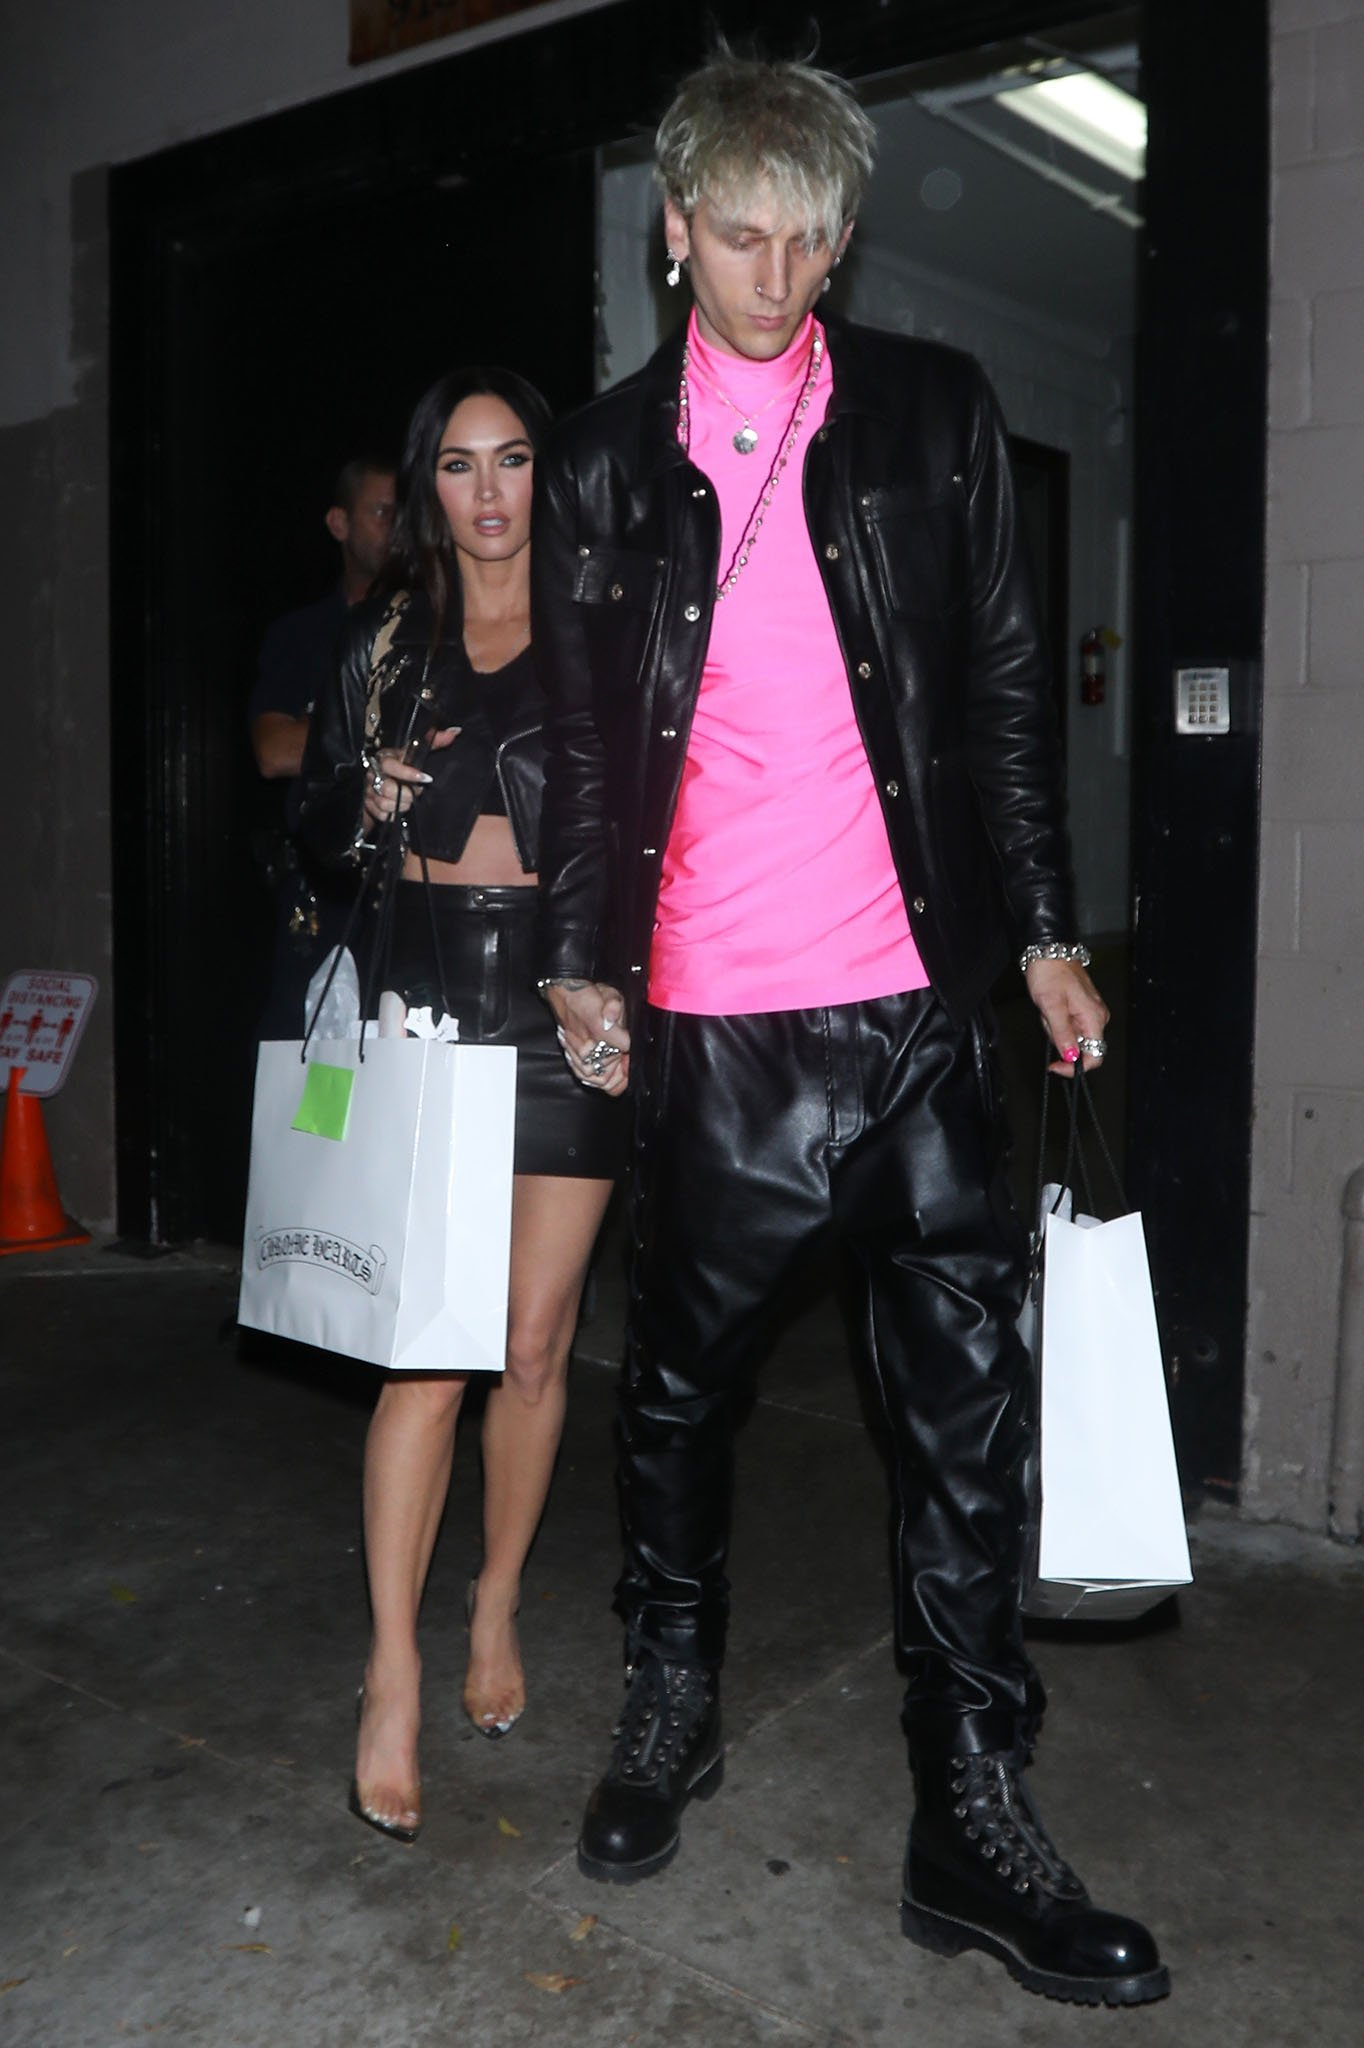 Megan Fox and Machine Gun Kelly leaving Chrome Hearts dinner party in Los Angeles on June 11, 2021